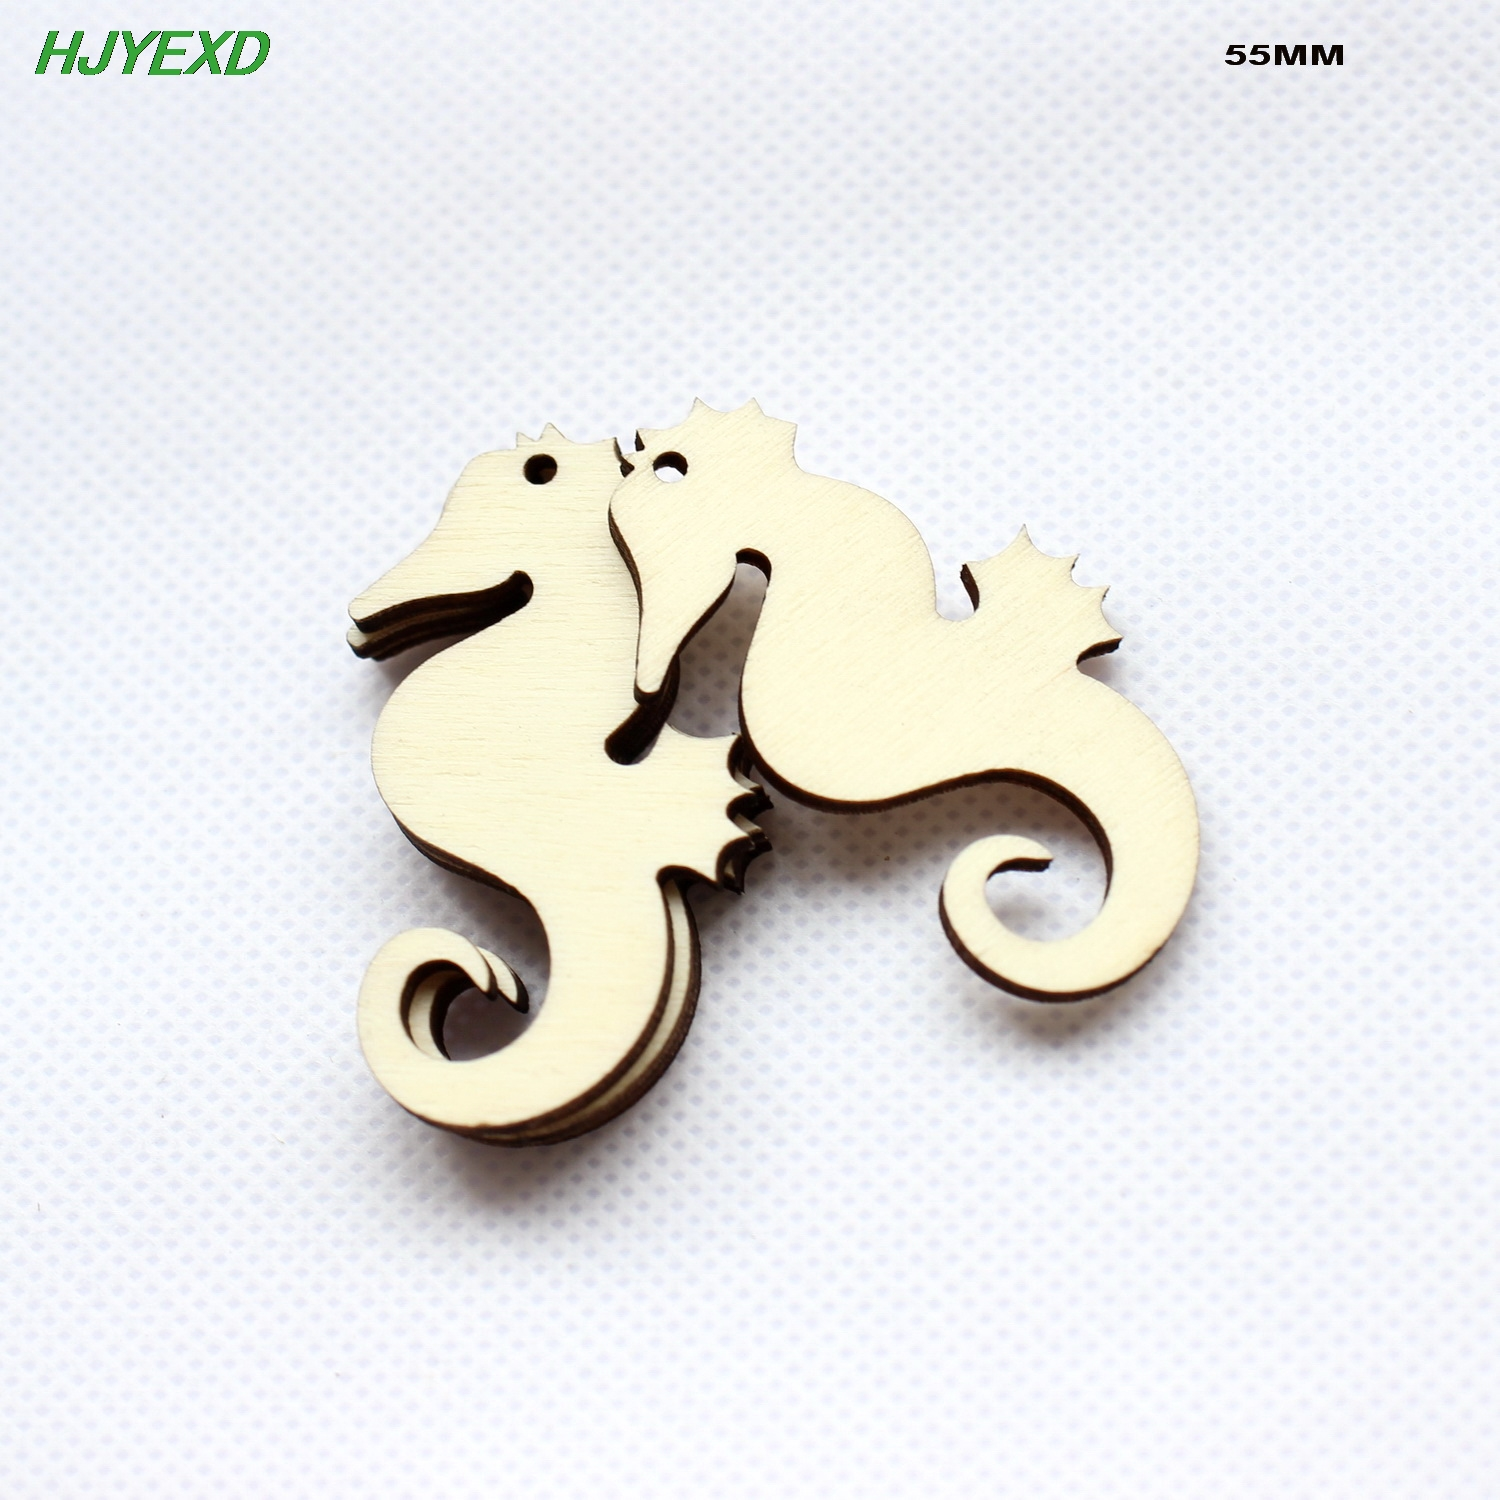 (50pcs/lot) 55mm Natural Blank Wooden Sea Horse Earrings Party Oraments Rustic Wood Keychains Tags Supplies Craft 2.2-CT1547